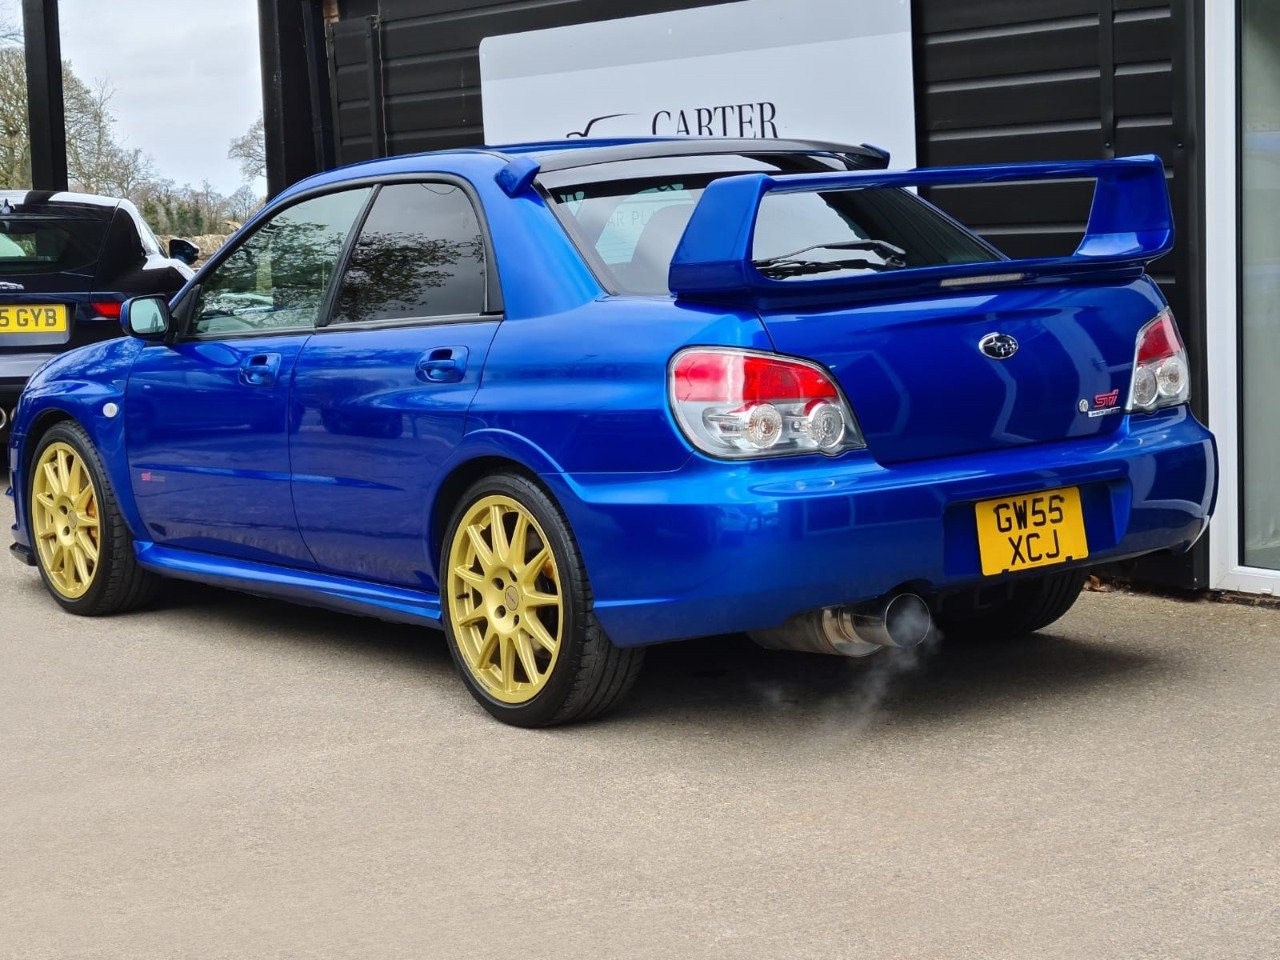 IMPREZA WRX STI (2006/55) Low Tax Band 368 BHP For Sale (picture 3 of 23)